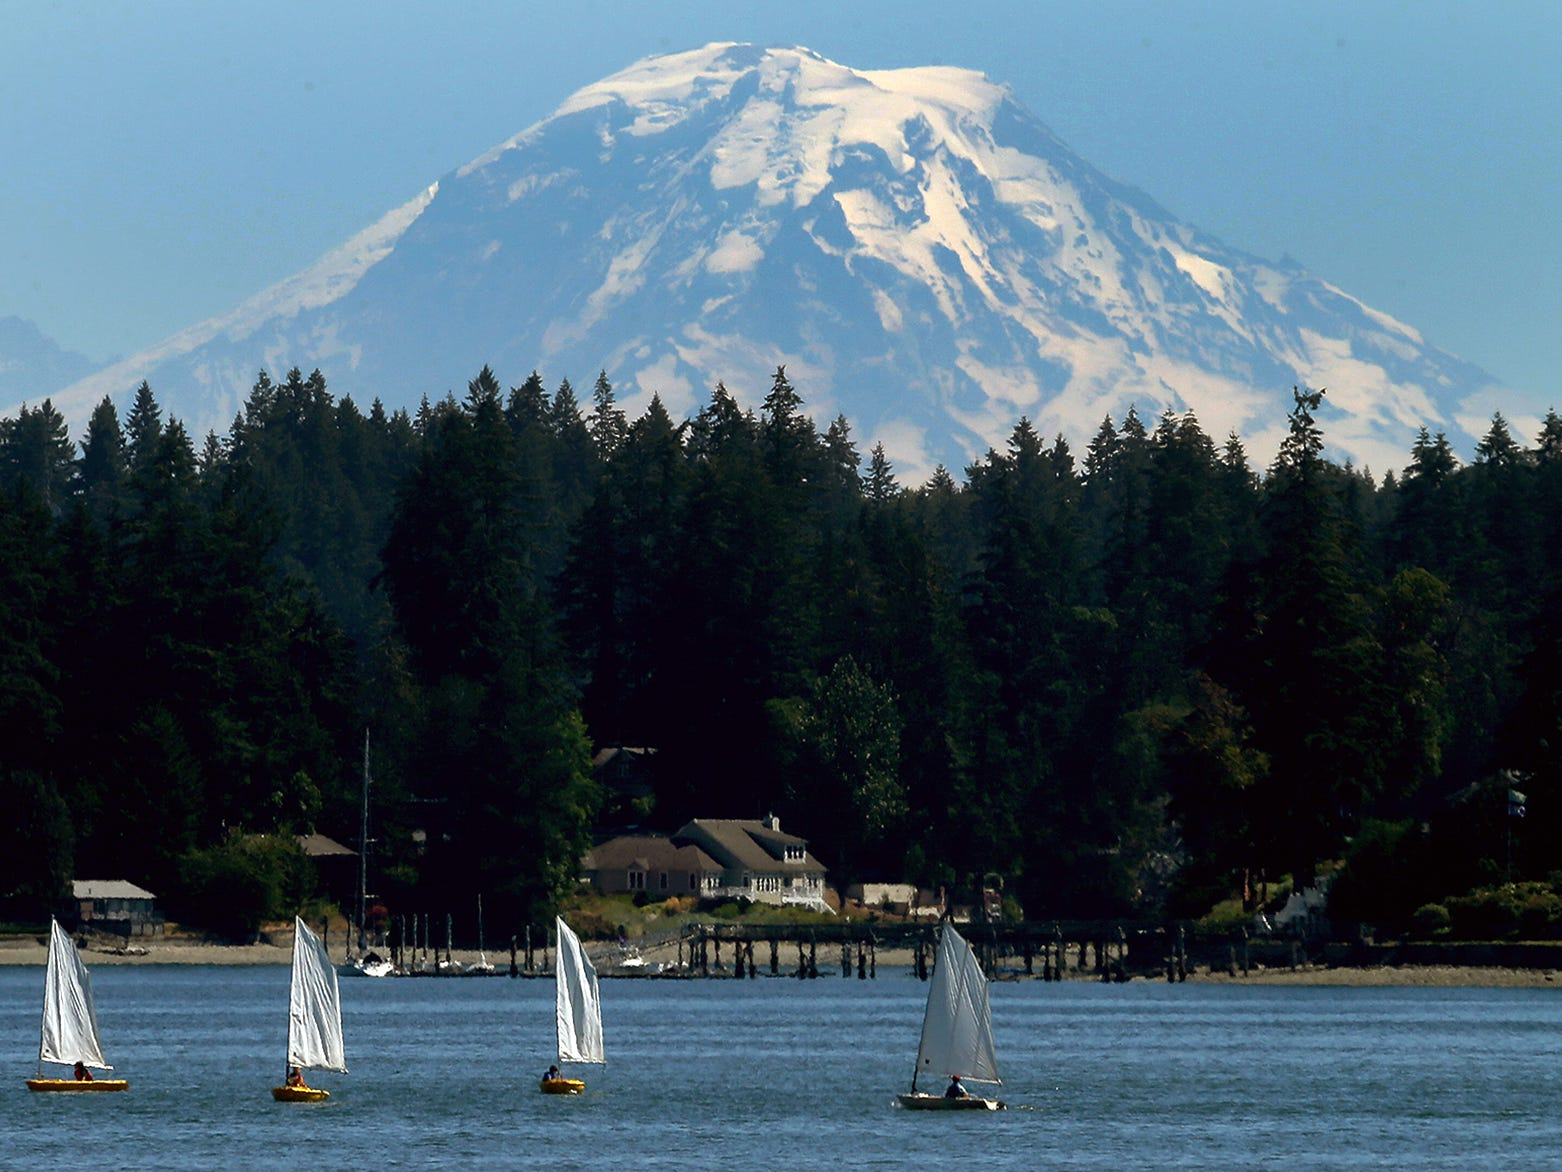 Mount Rainier looms in the distance as boats from the summer youth sailing class catch the wind on Liberty Bay in Poulsbo on Thursday, July 12, 2018.